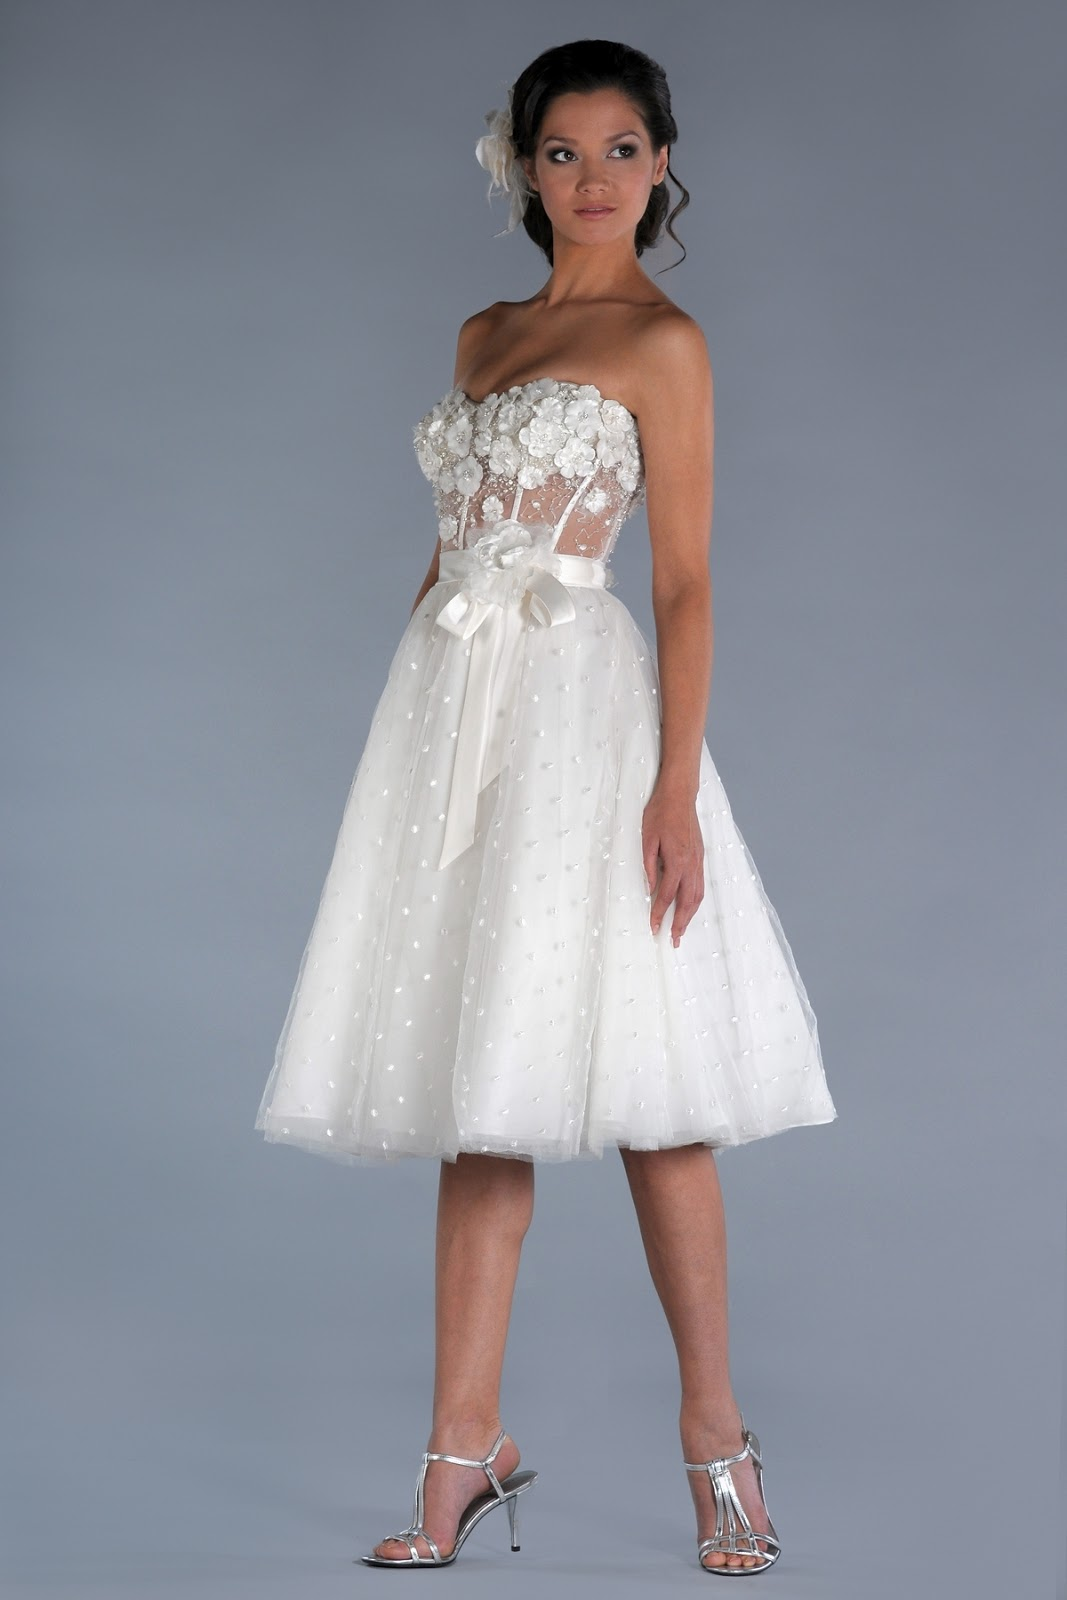 dressybridal 5 cute short wedding dresses for summer With wedding dresses for short women